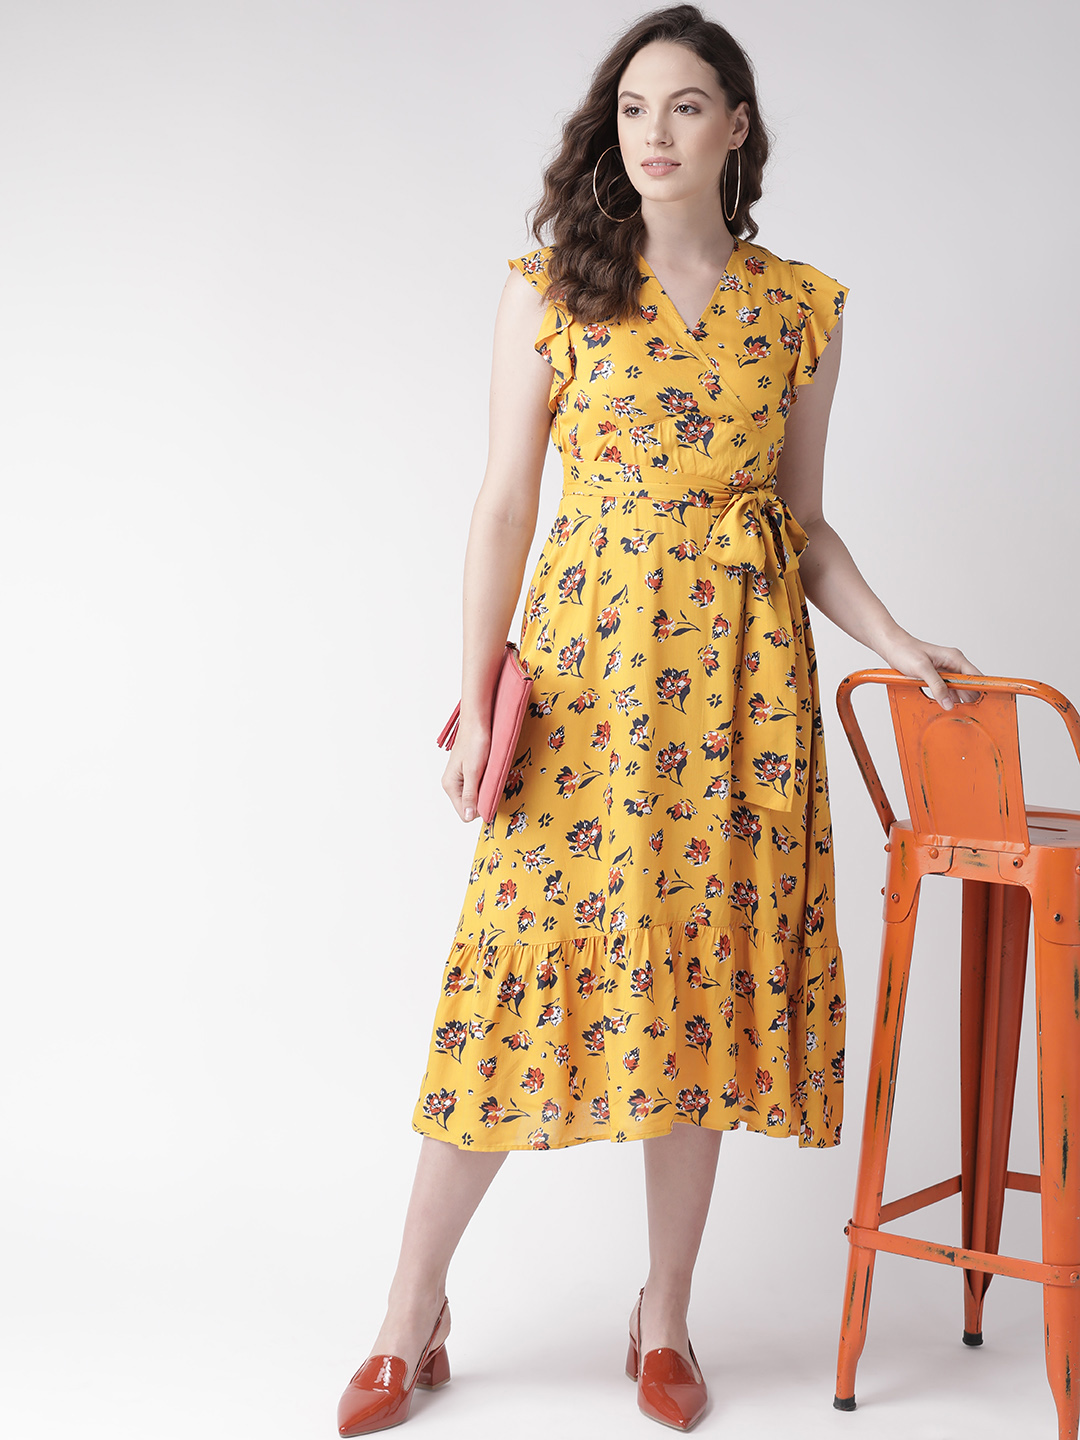 Dresses-Cool Classic Revival Yellow Dress4